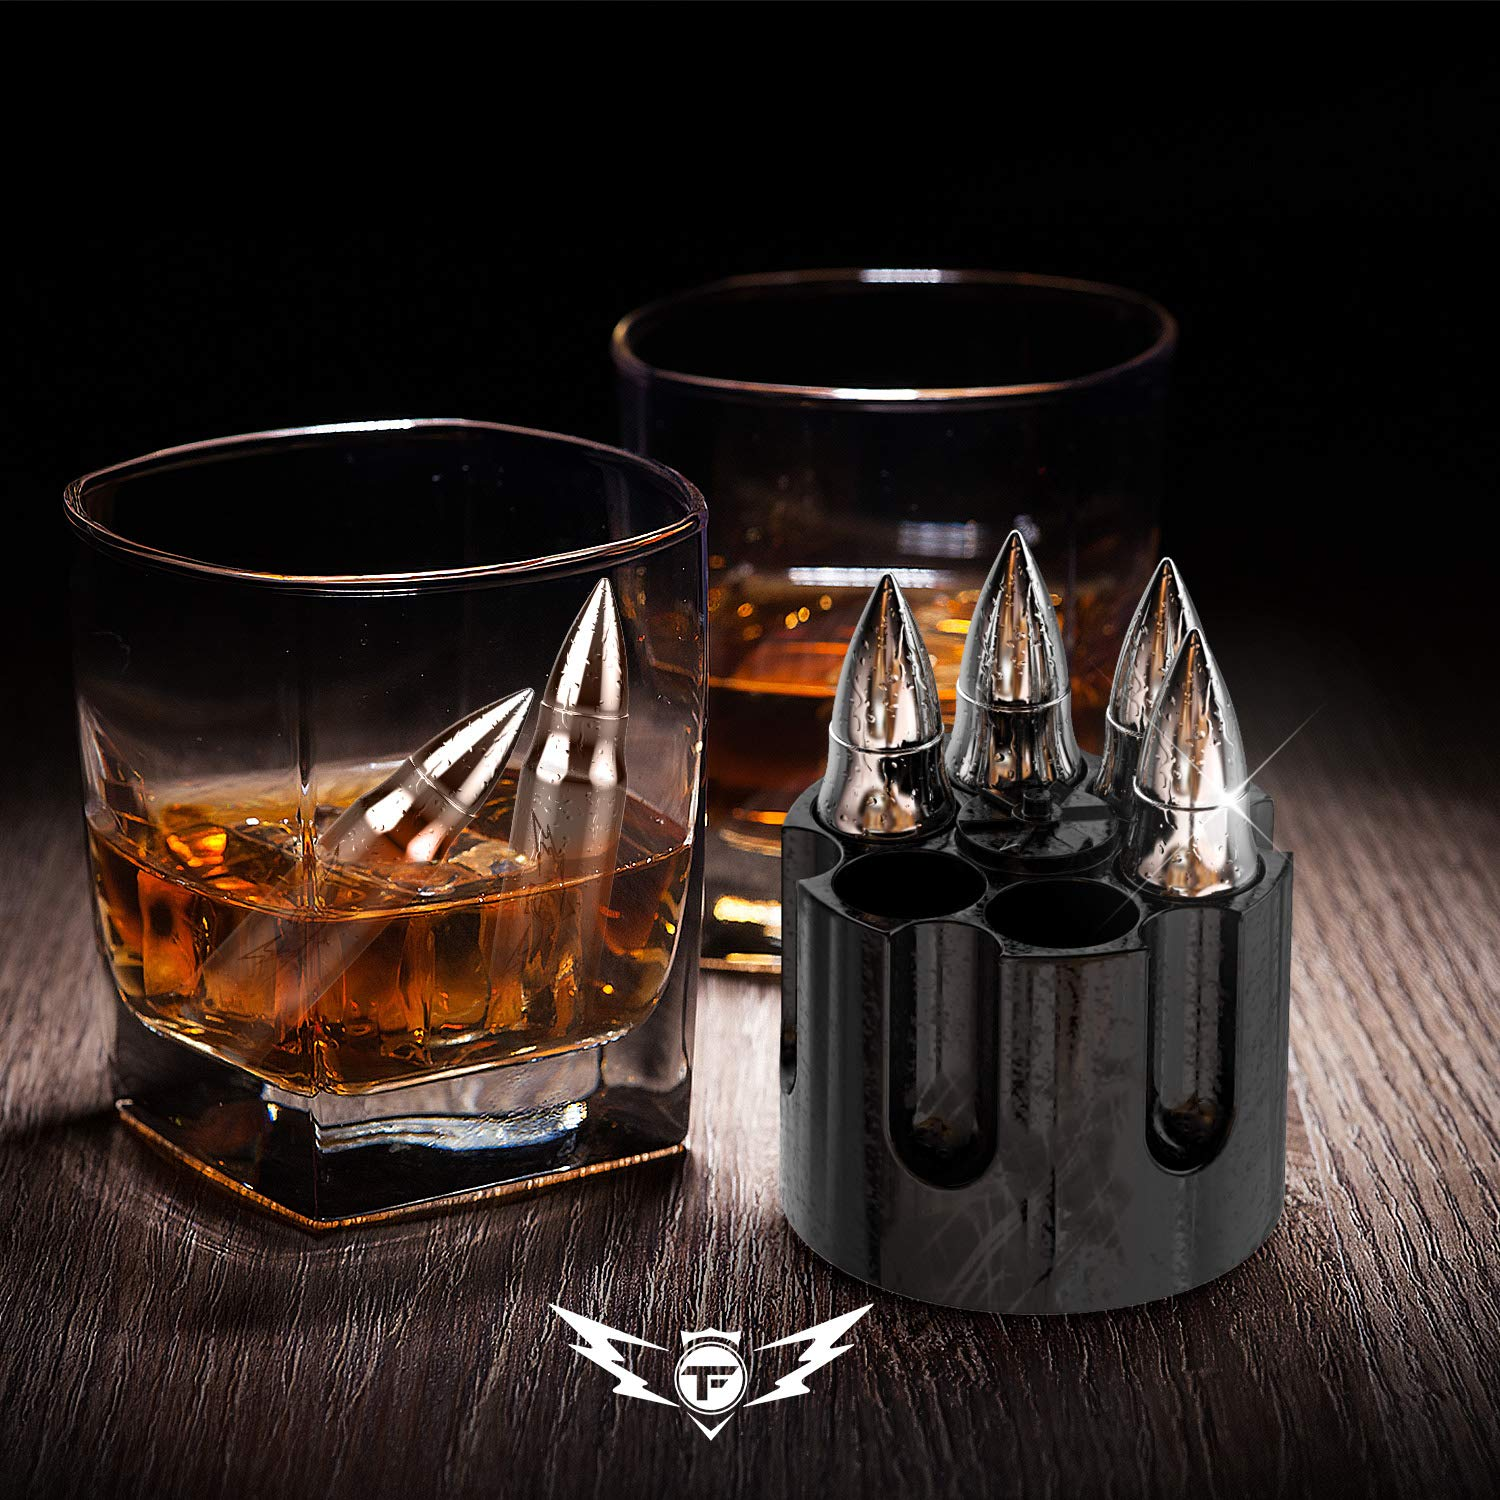 Bullet Shaped Metal Whiskey Stones - 6-Pack Stainless Steel Whiskey Rocks | Metal Ice Cubes to Chill Bourbon, Scotch in Your Whisky Glass - Cool Gifts for Men, Father's Day, Christmas Stocking Stuffer by TF TAKEFLIGHT (Image #2)